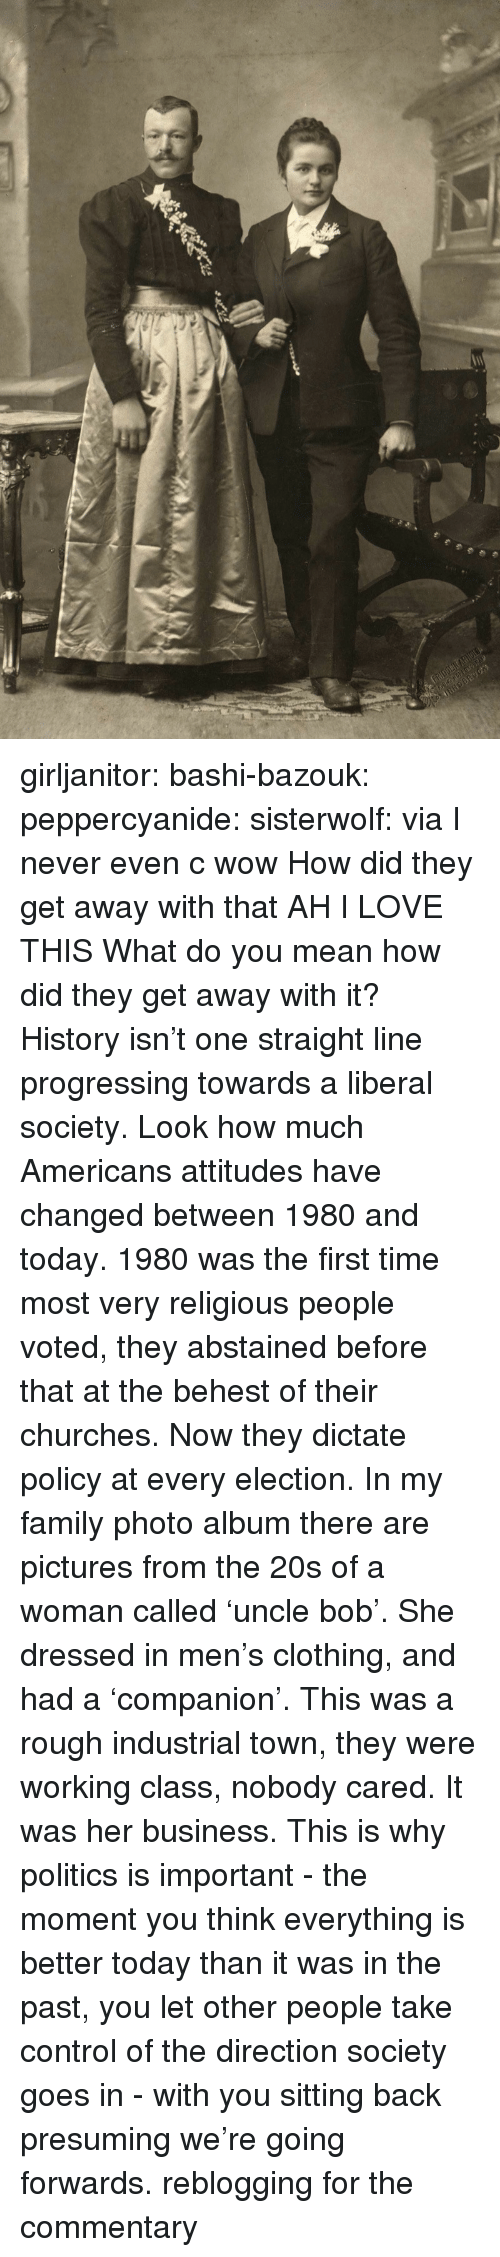 family photo: girljanitor: bashi-bazouk:   peppercyanide:   sisterwolf:    via    I never even c wow How did they get away with that AH I LOVE THIS   What do you mean how did they get away with it? History isn't one straight line progressing towards a liberal society. Look how much Americans attitudes have changed between 1980 and today. 1980 was the first time most very religious people voted, they abstained before that at the behest of their churches. Now they dictate policy at every election. In my family photo album there are pictures from the 20s of a woman called 'uncle bob'. She dressed in men's clothing, and had a 'companion'. This was a rough industrial town, they were working class, nobody cared. It was her business. This is why politics is important - the moment you think everything is better today than it was in the past, you let other people take control of the direction society goes in - with you sitting back presuming we're going forwards.   reblogging for the commentary